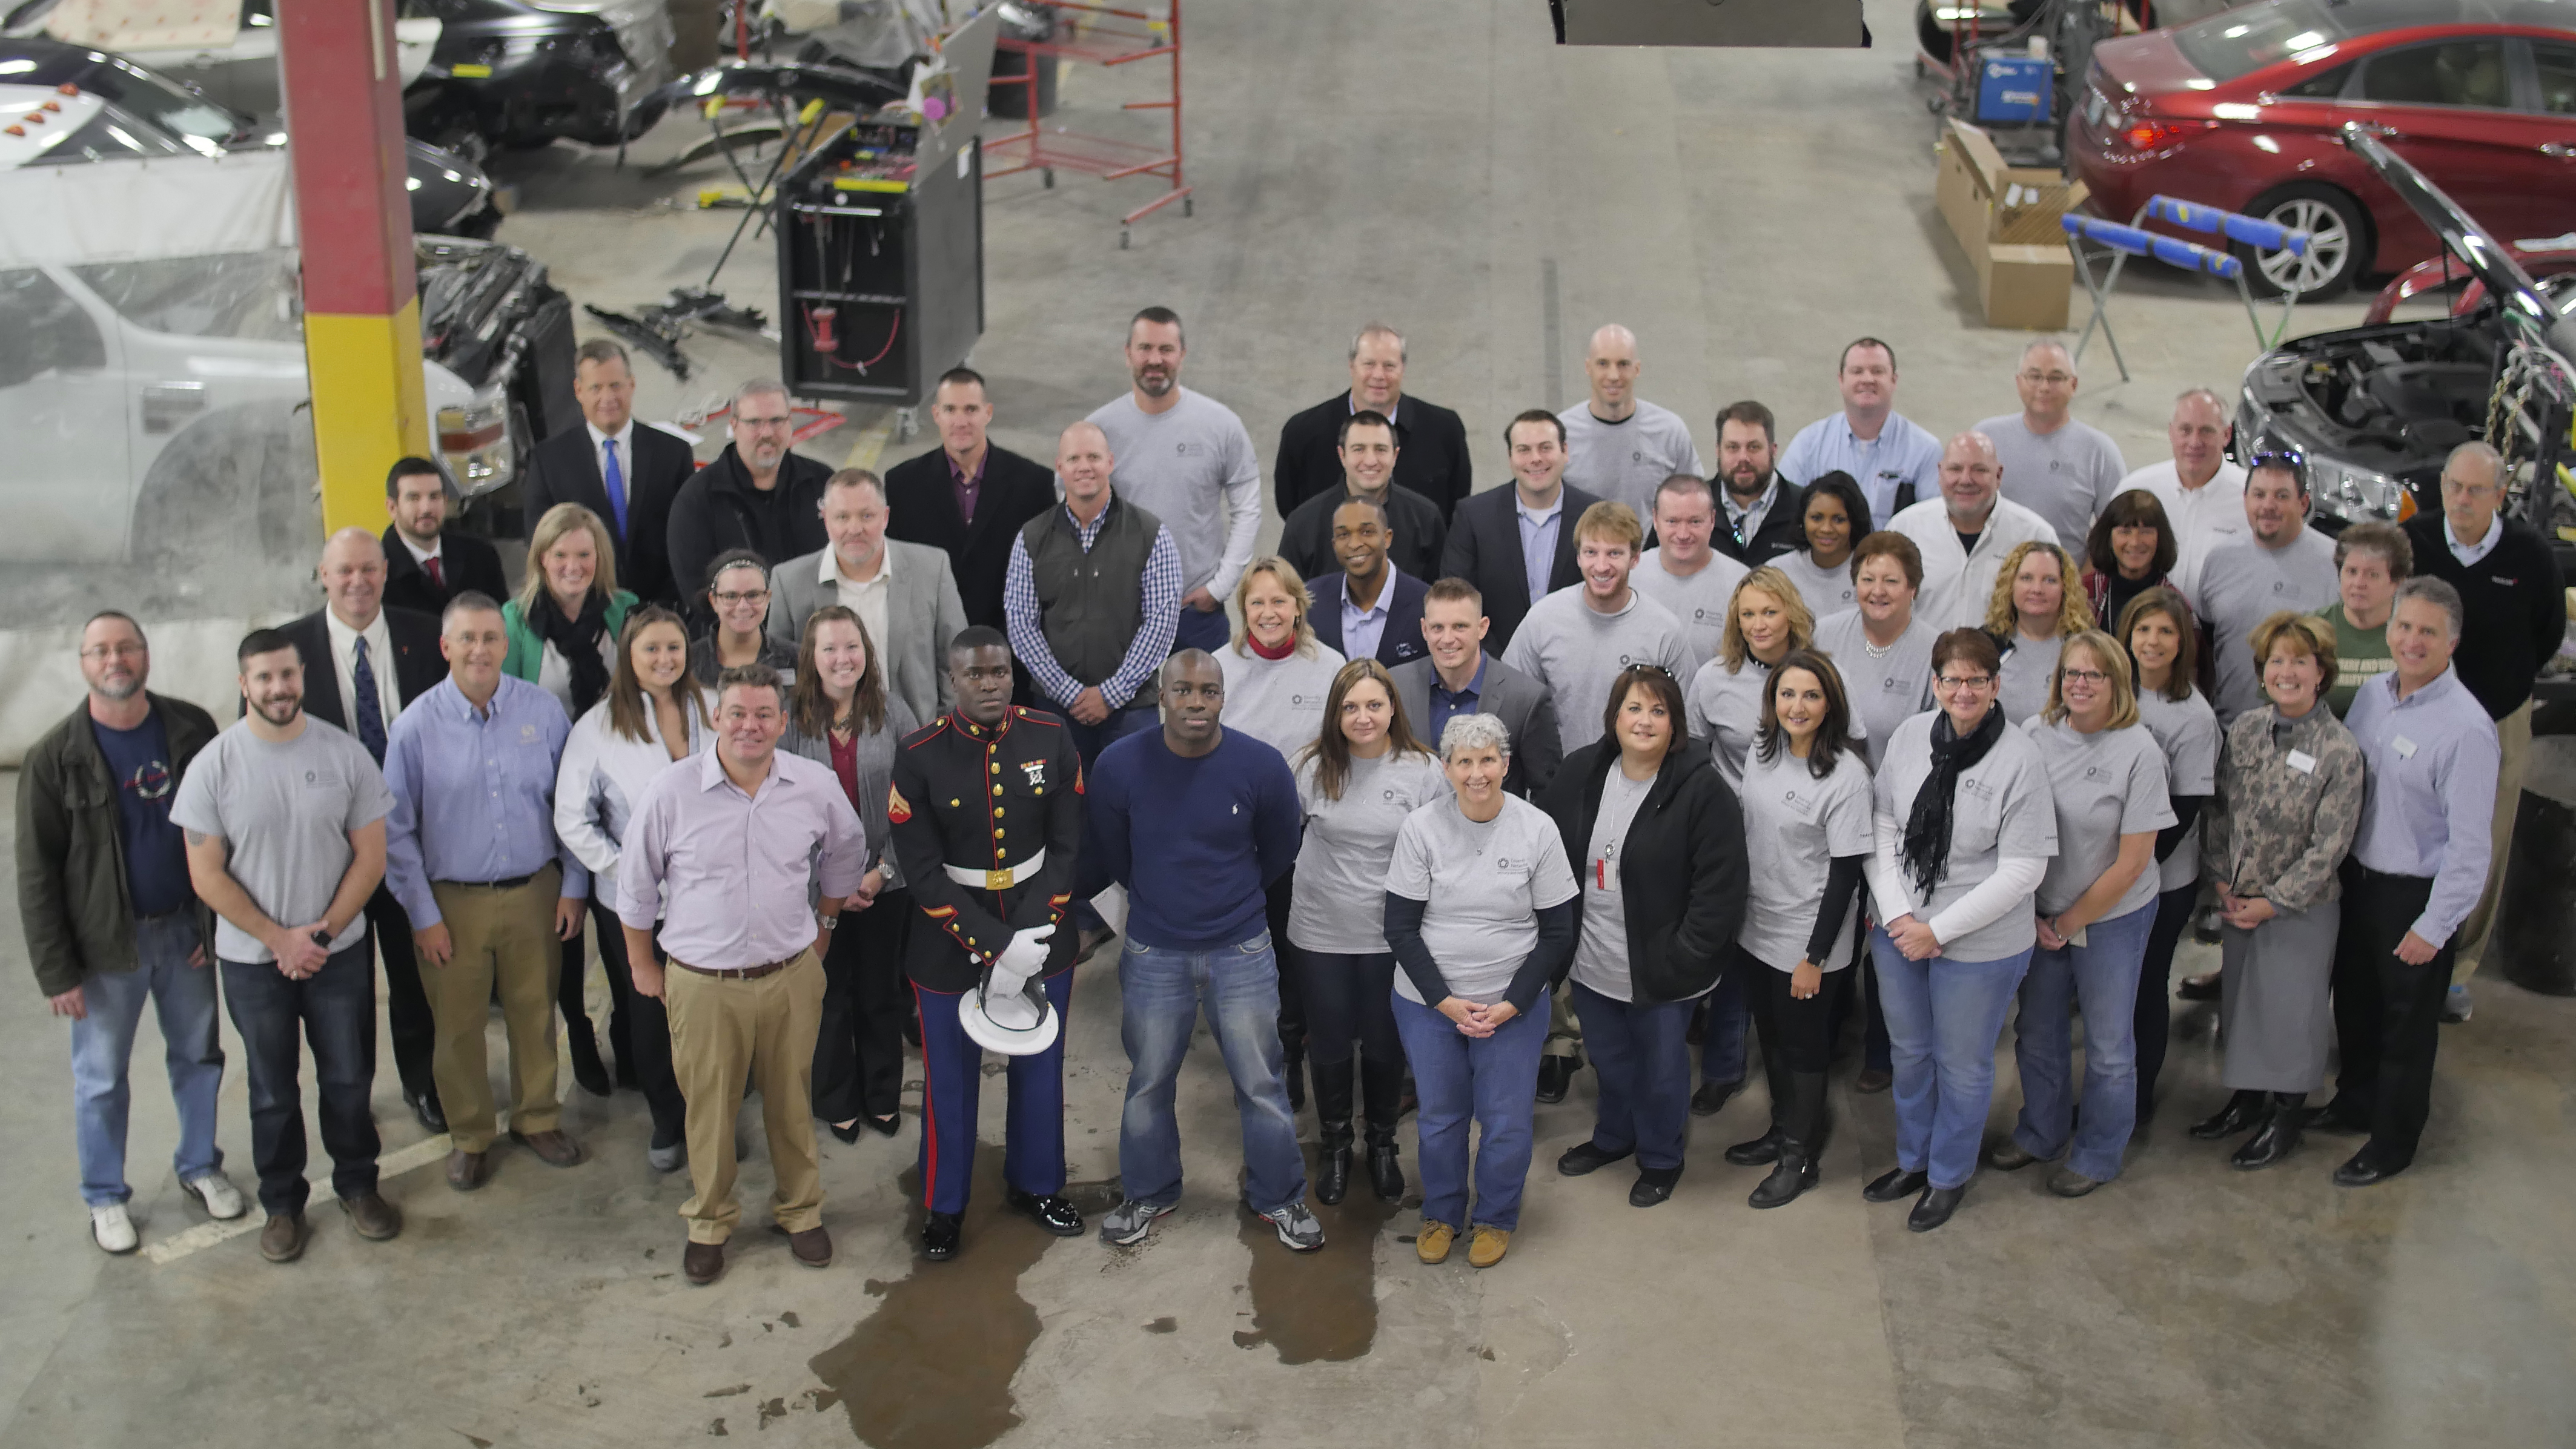 Traveler S Claims Donates Restored Vehicles To Families In Tennessee And Missouri